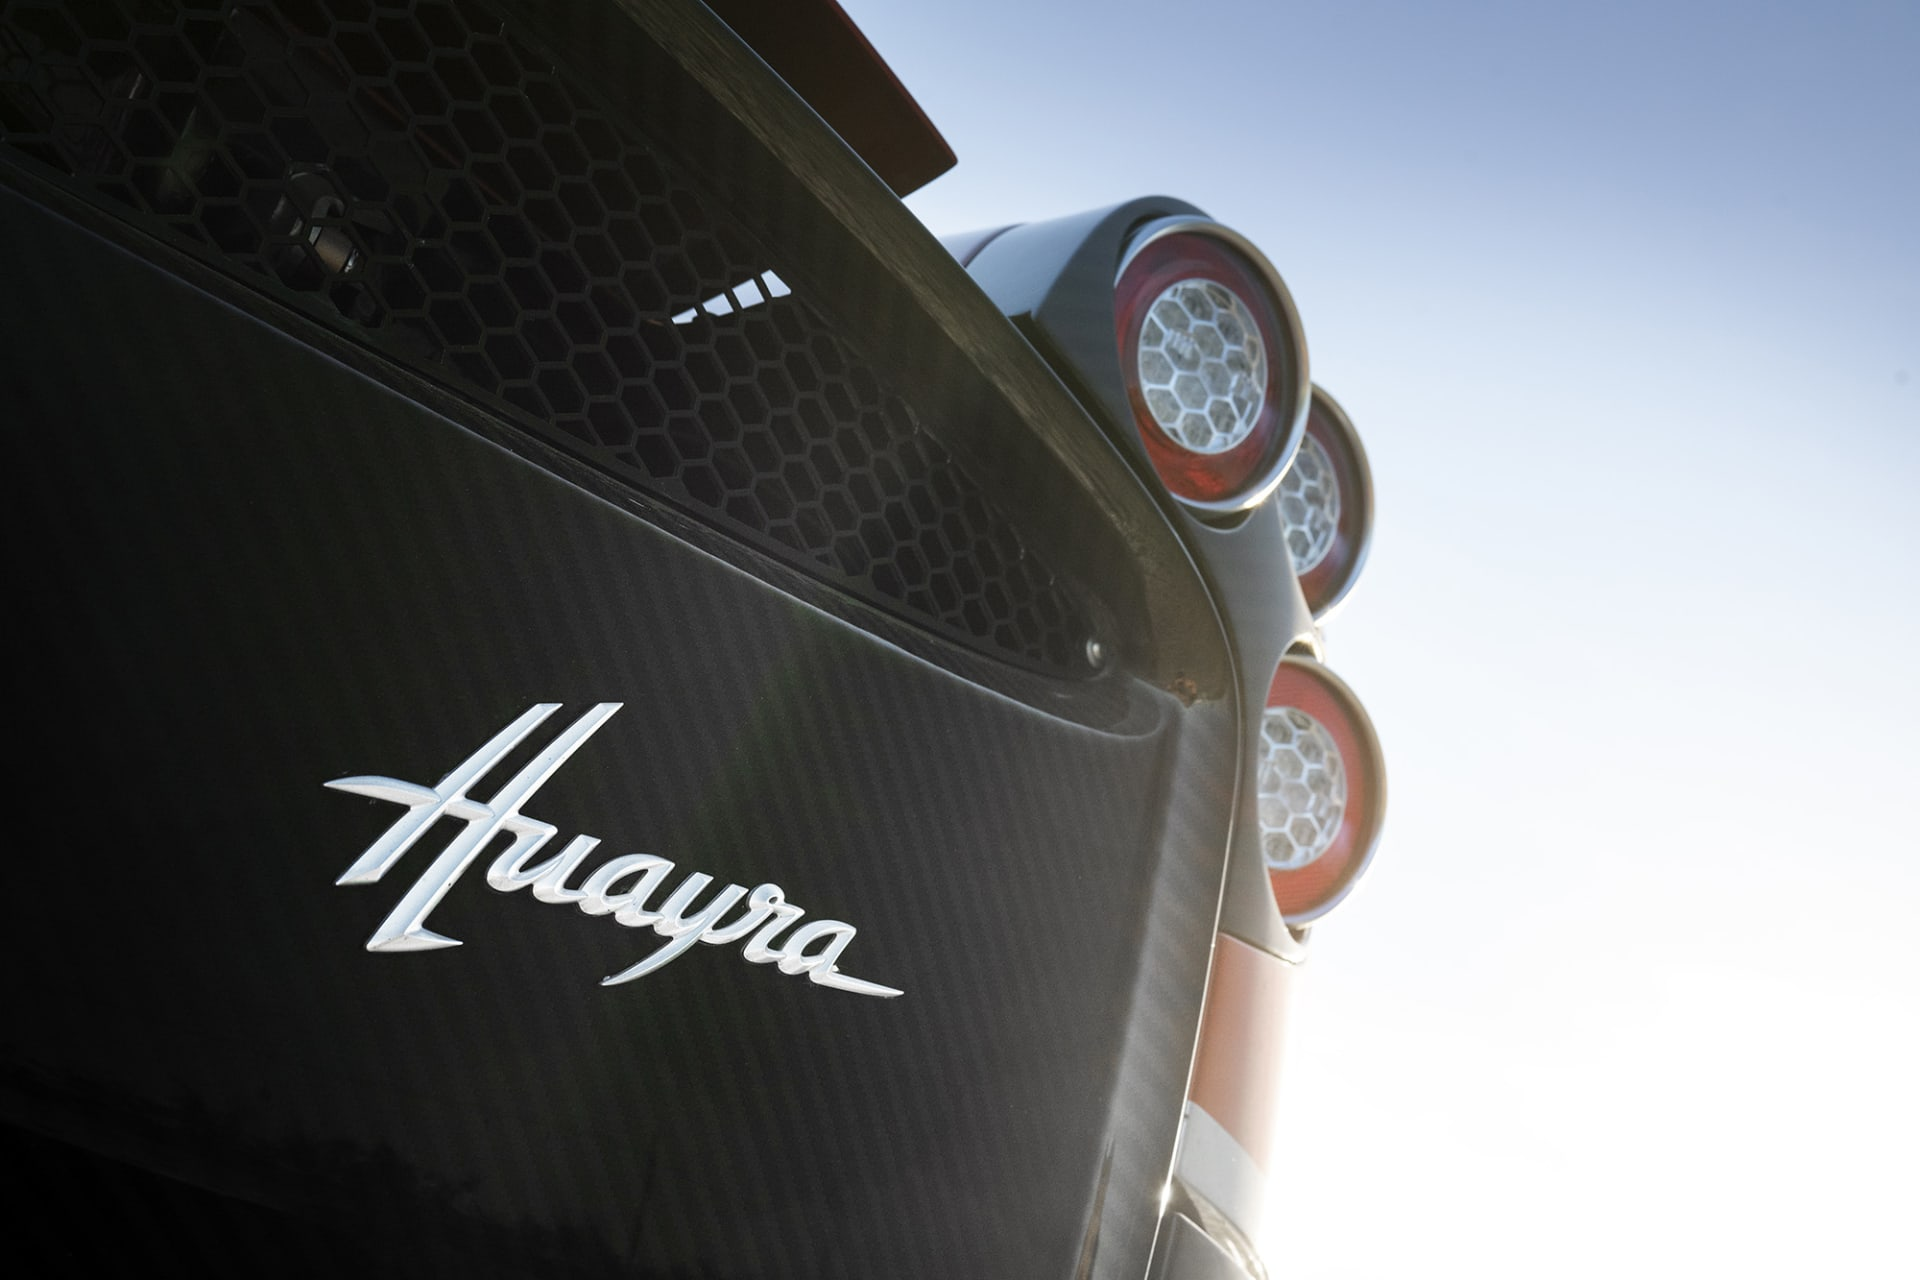 The name Huayra comes from the South American wind god Huayra Tata.